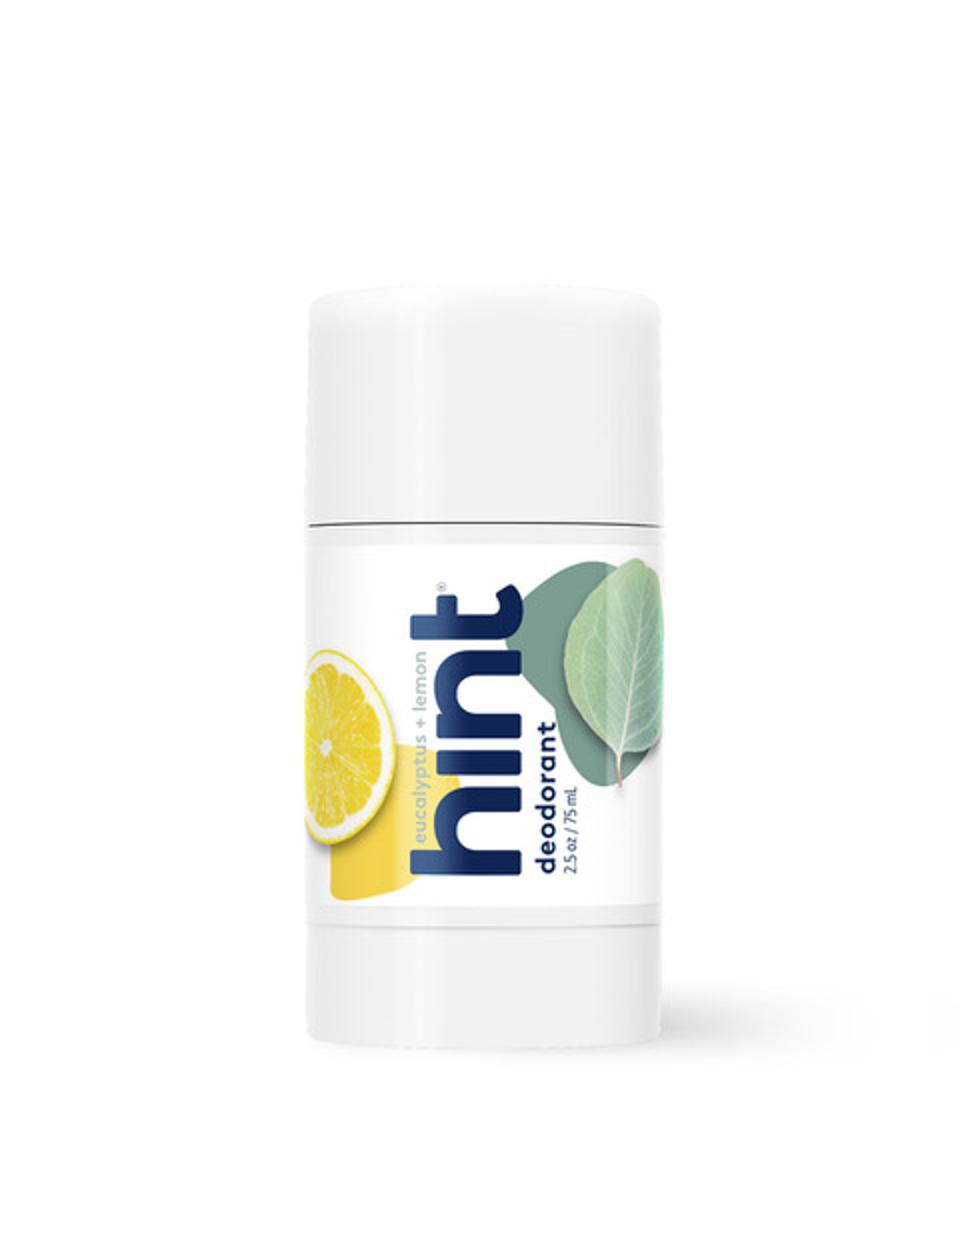 Hint Eucalyptus +Lemon Deodorant made with 100% Plant-Derived Ingredients